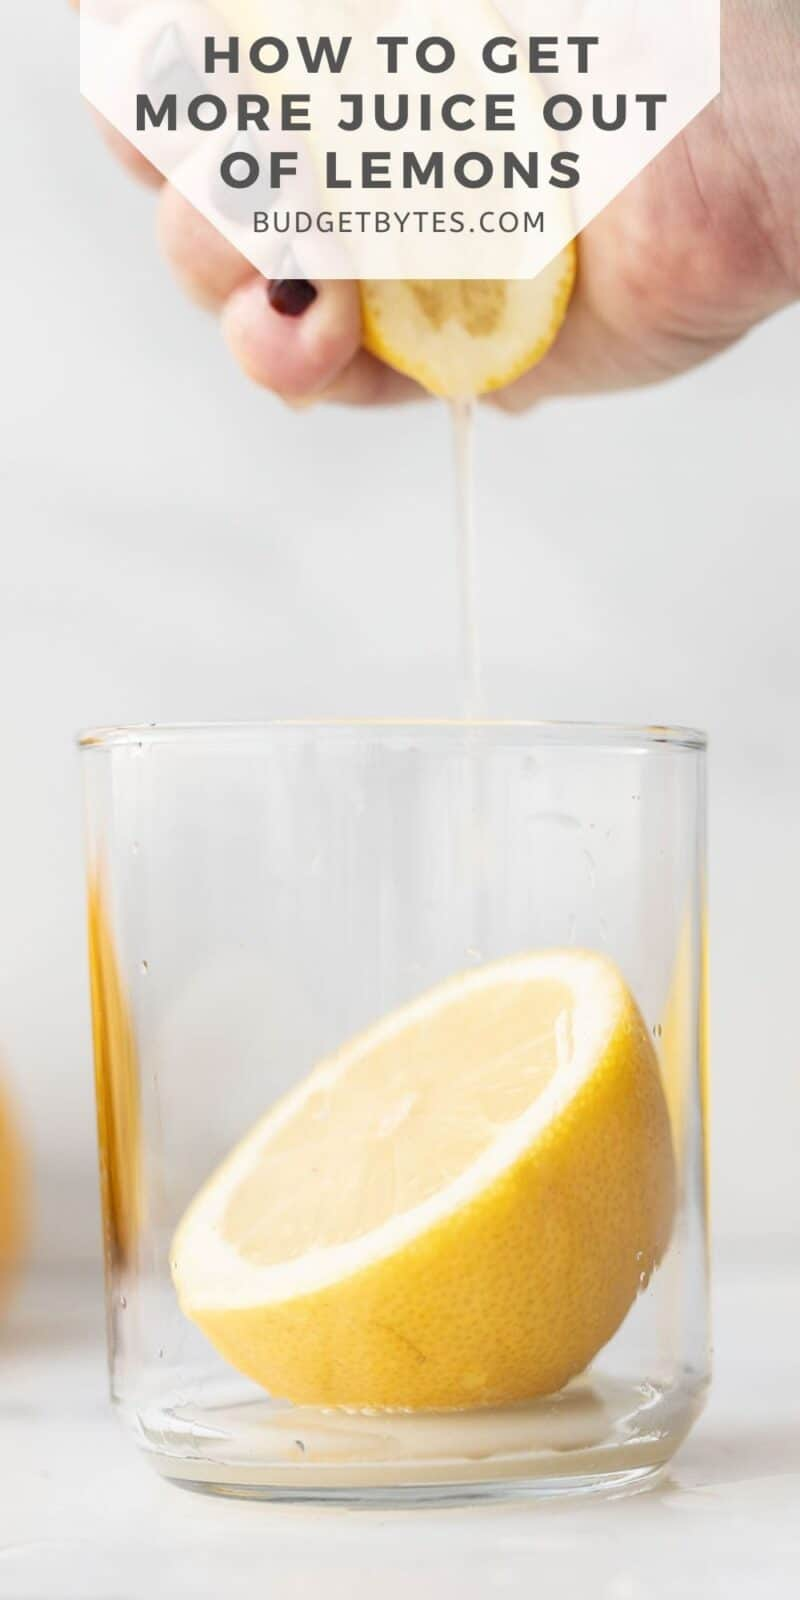 a hand squeezing a lemon into a glass, title text at the top